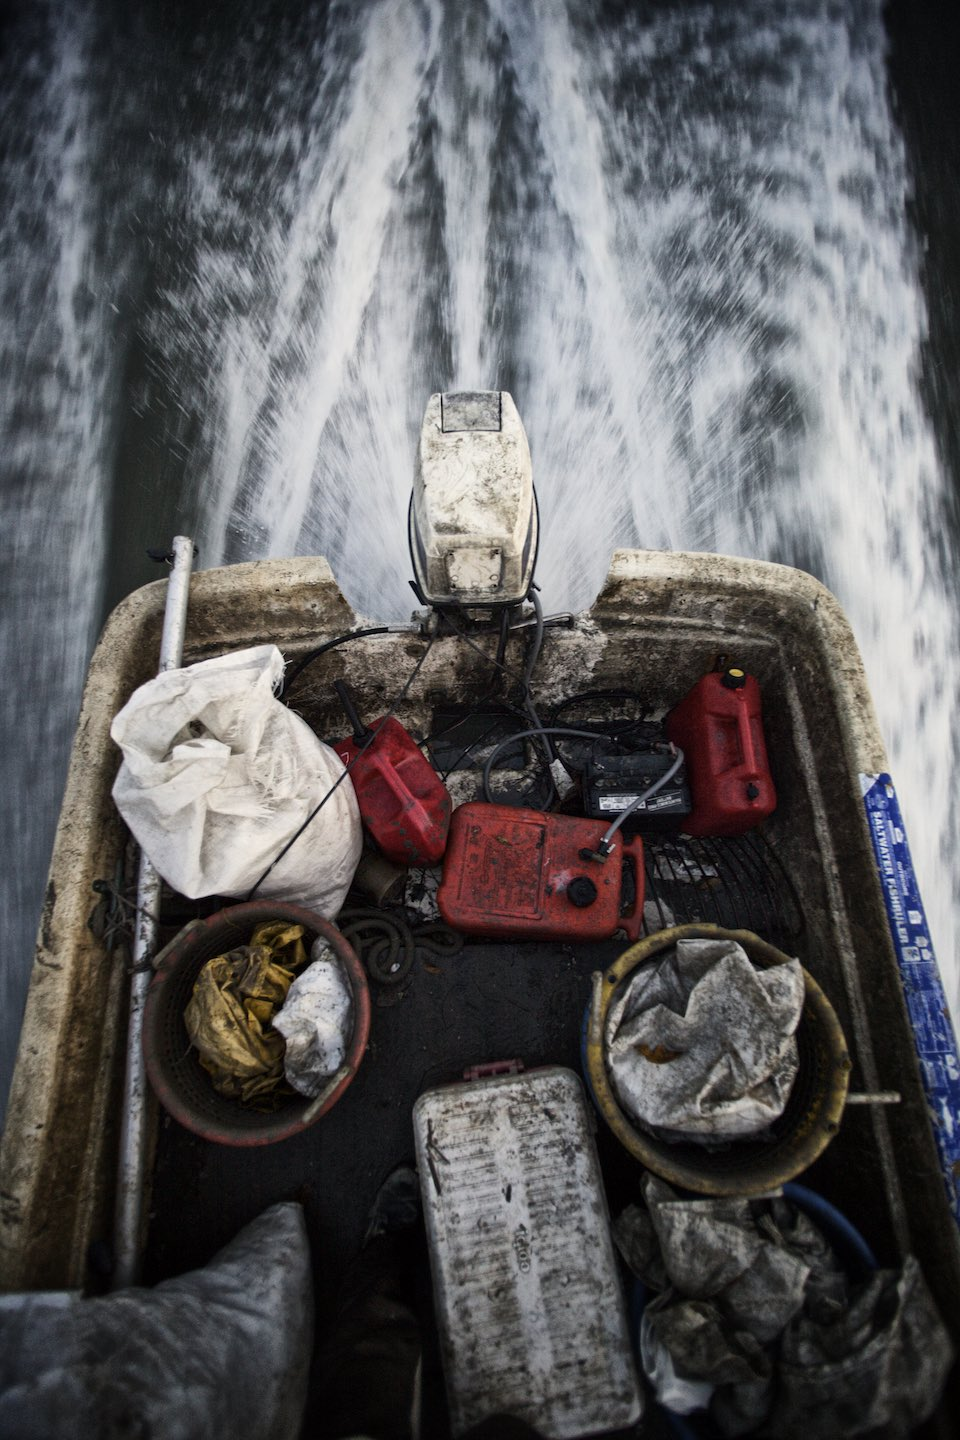 Motor boat carrying  fishing gear on the water.